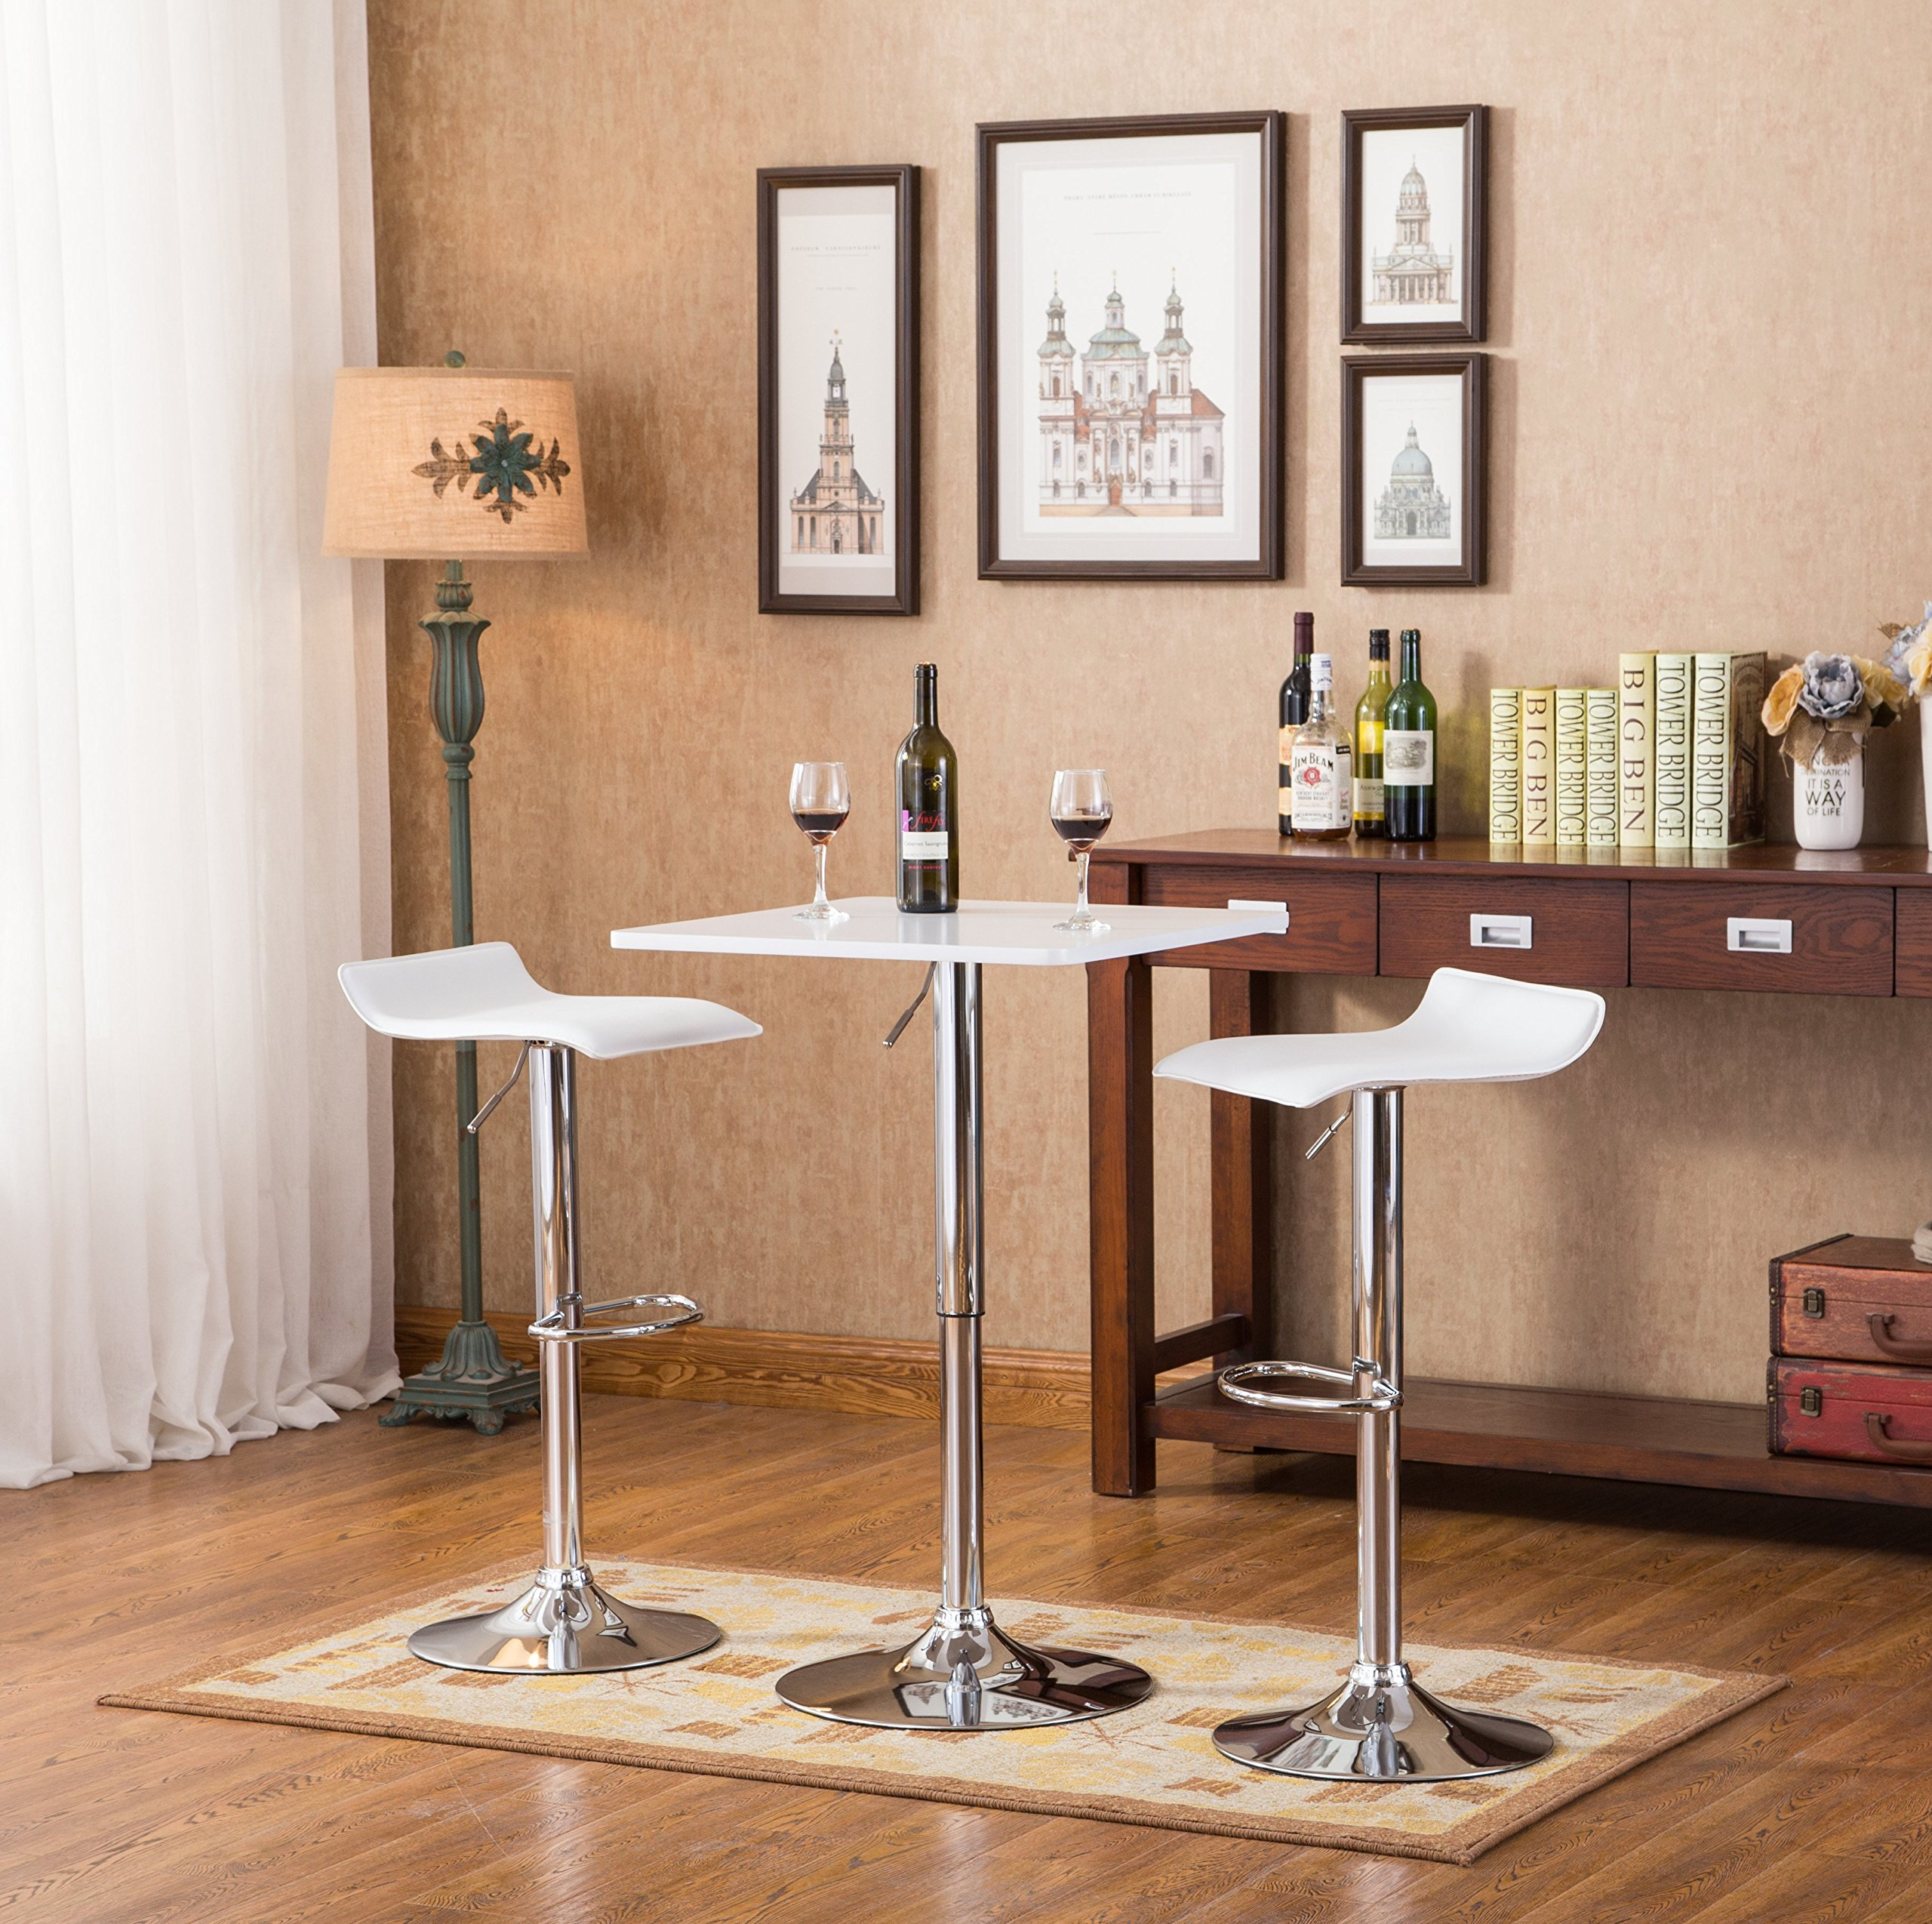 Cool Buy Roundhill Solid Wood Swivel Bar Stools With Back 24 Theyellowbook Wood Chair Design Ideas Theyellowbookinfo